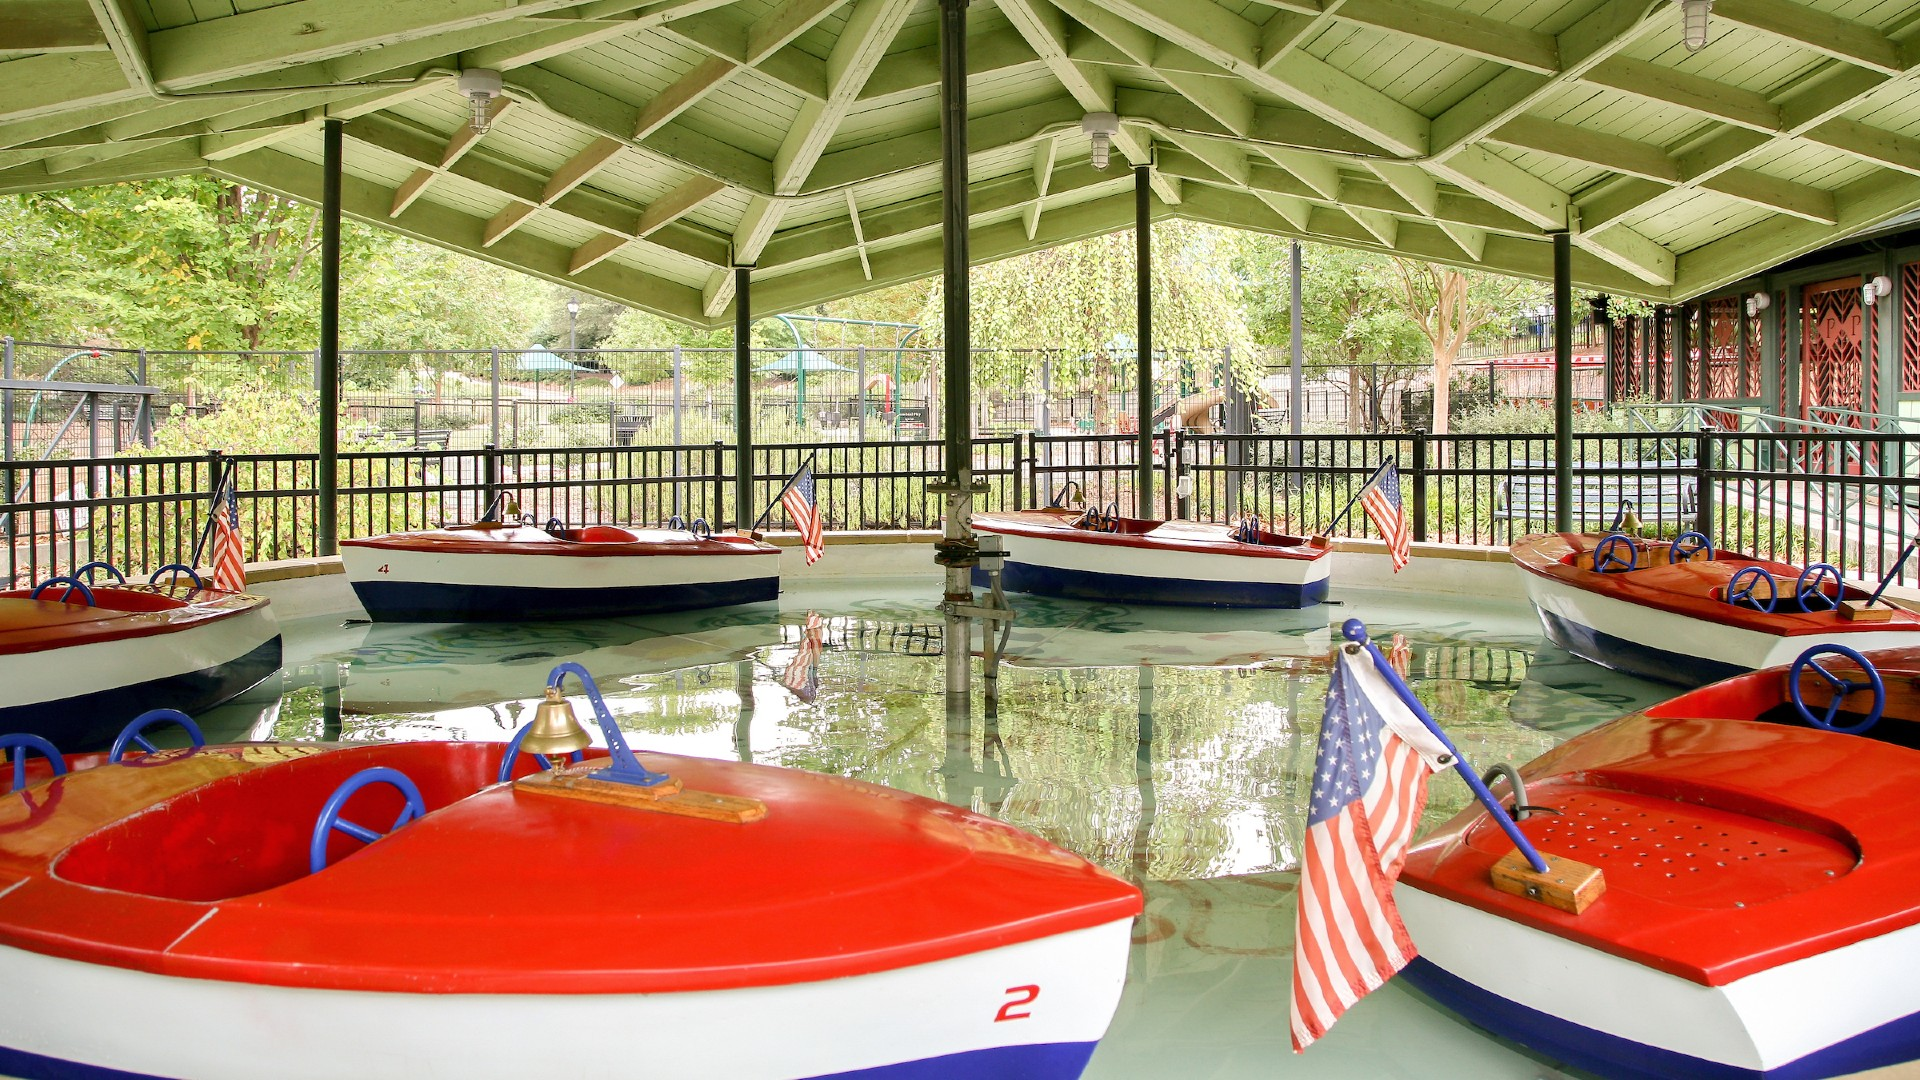 view of six empty kiddie boats floating under the pavilion at pullen park